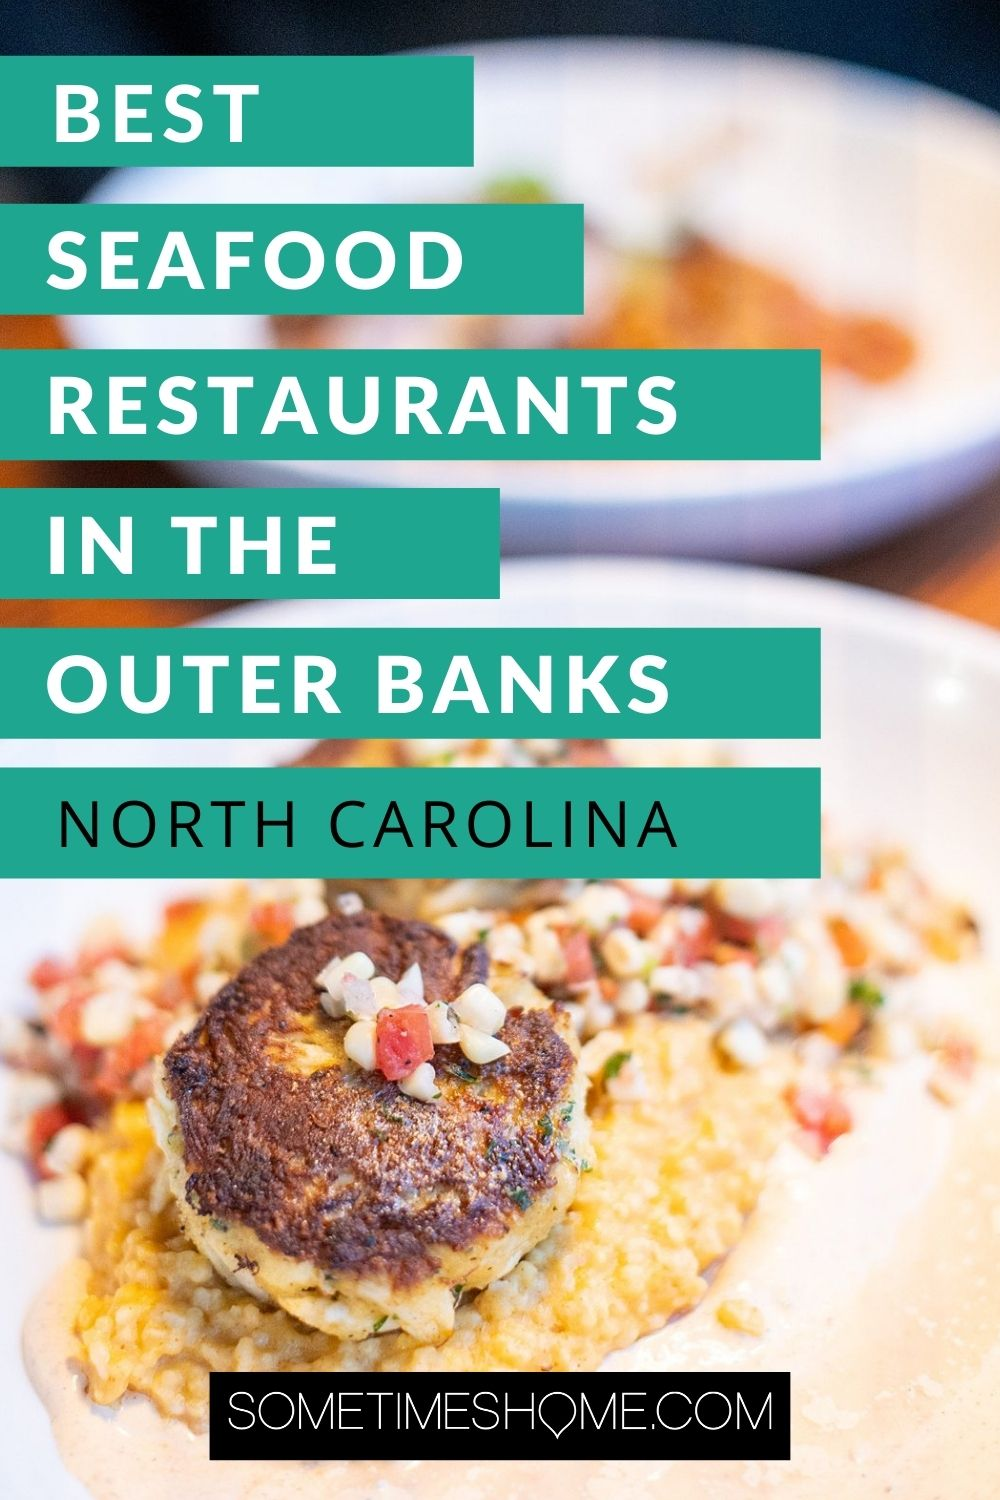 Pinterest image for the best seafood restaurants in the Outer Banks in North Carolina, with a picture of crab cakes on a bed of grits with corn and tomato salsa.